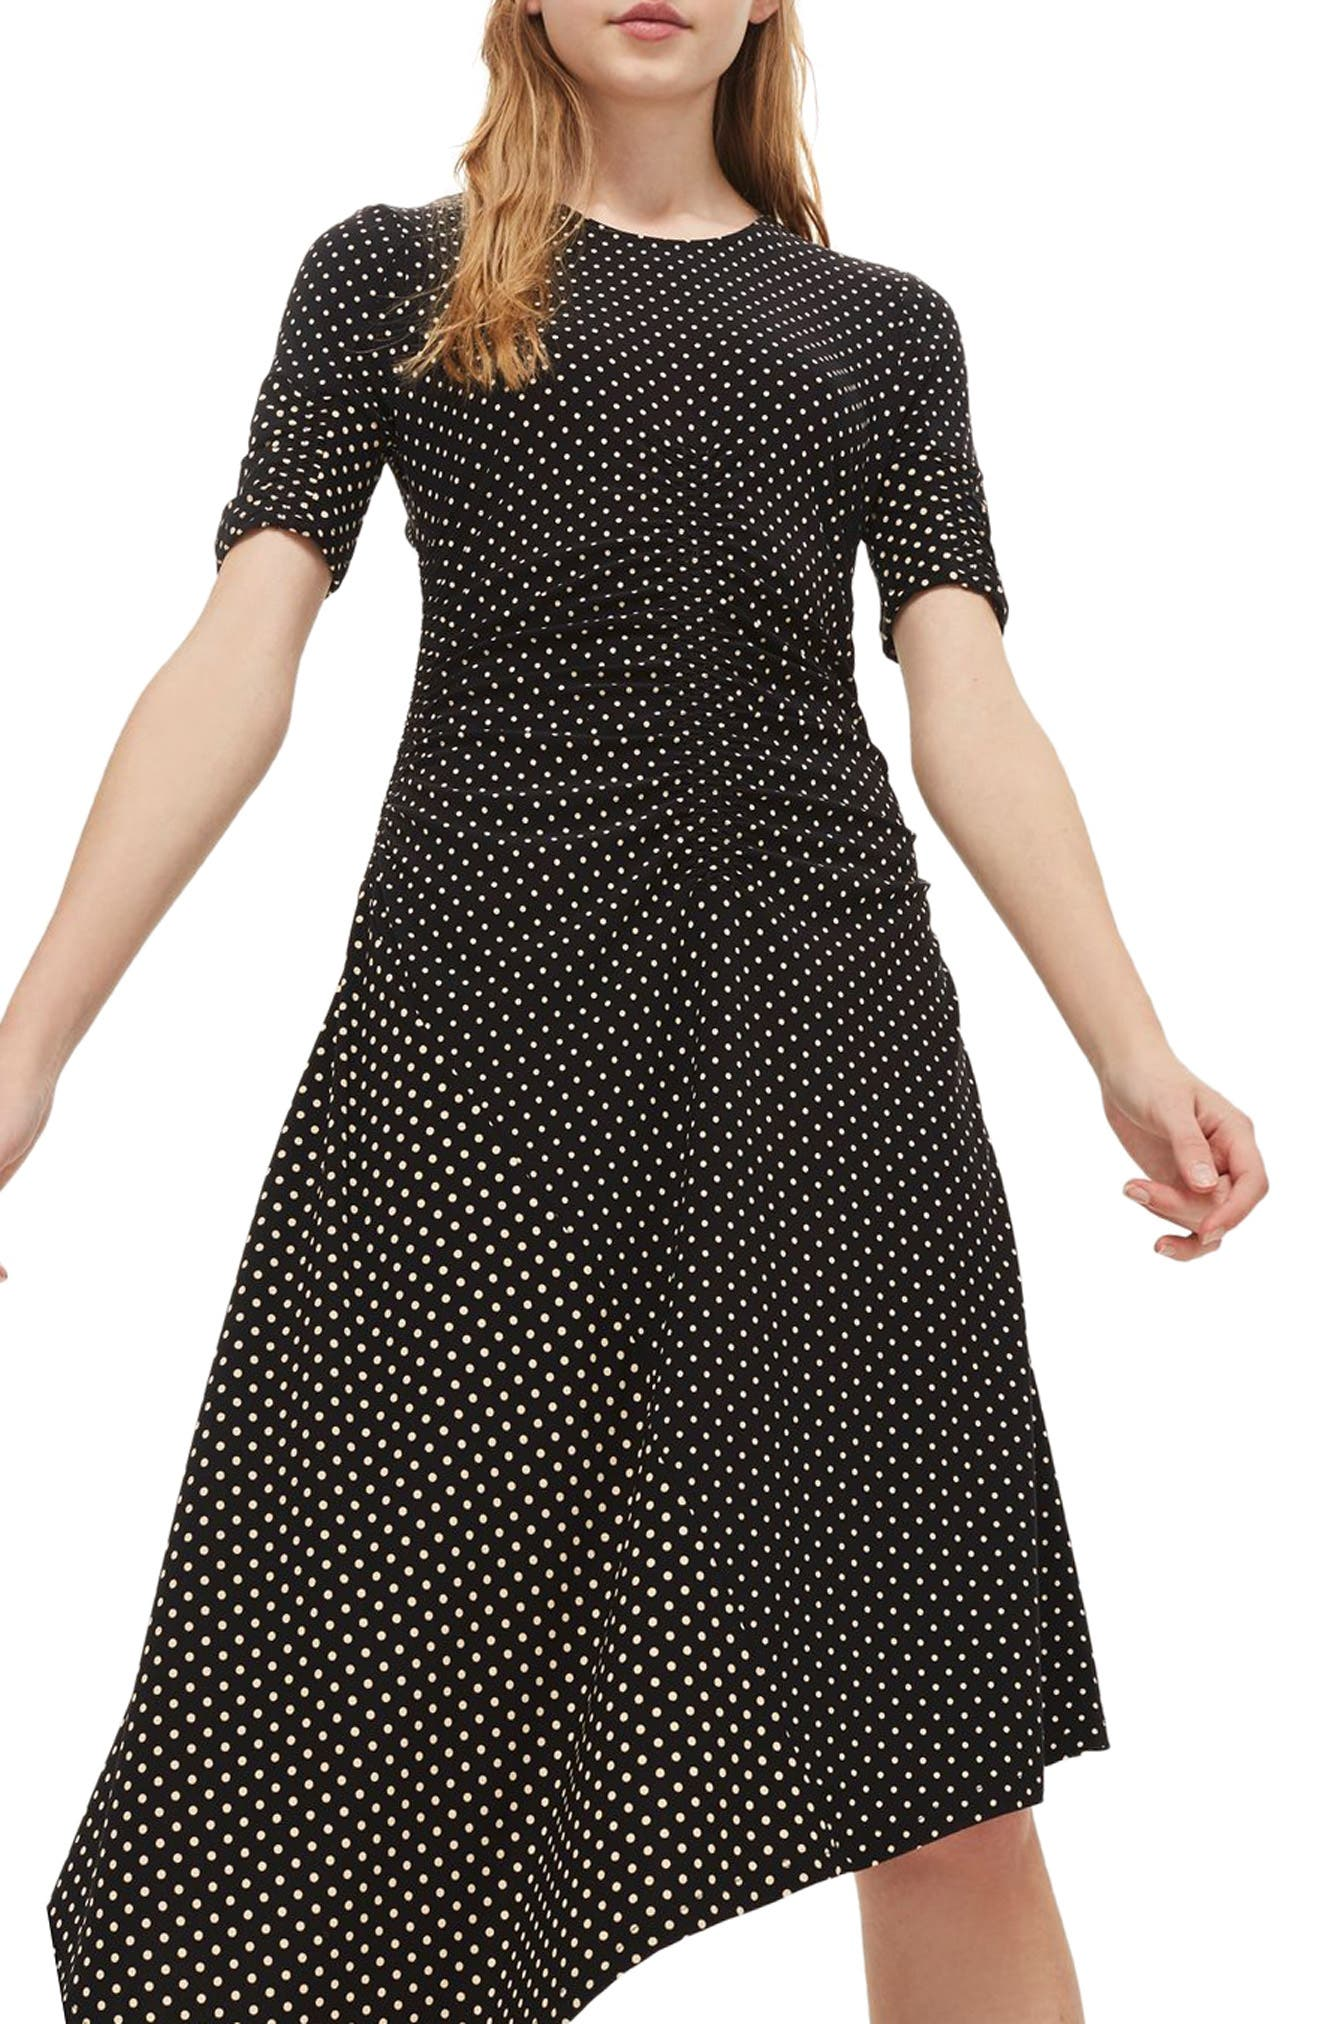 Polka Dot Asymmetrical Midi Dress,                             Main thumbnail 1, color,                             001